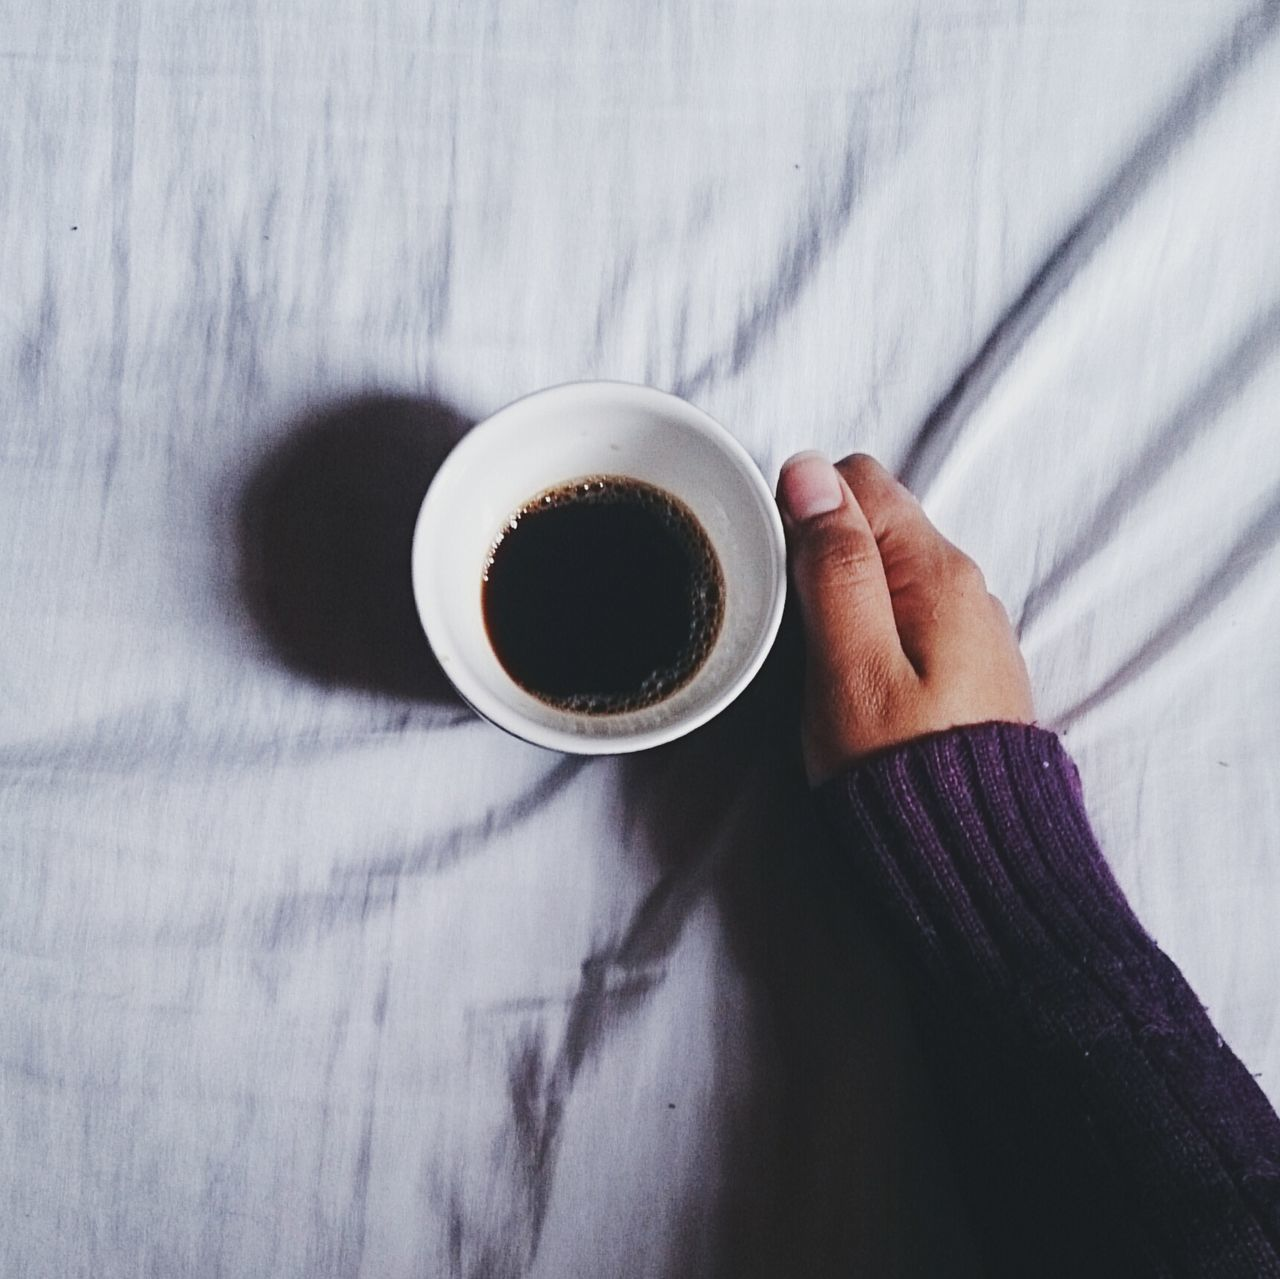 About be in love with a coffe in cold day Coffee Cold Days Emotions Eyeen Best Shots